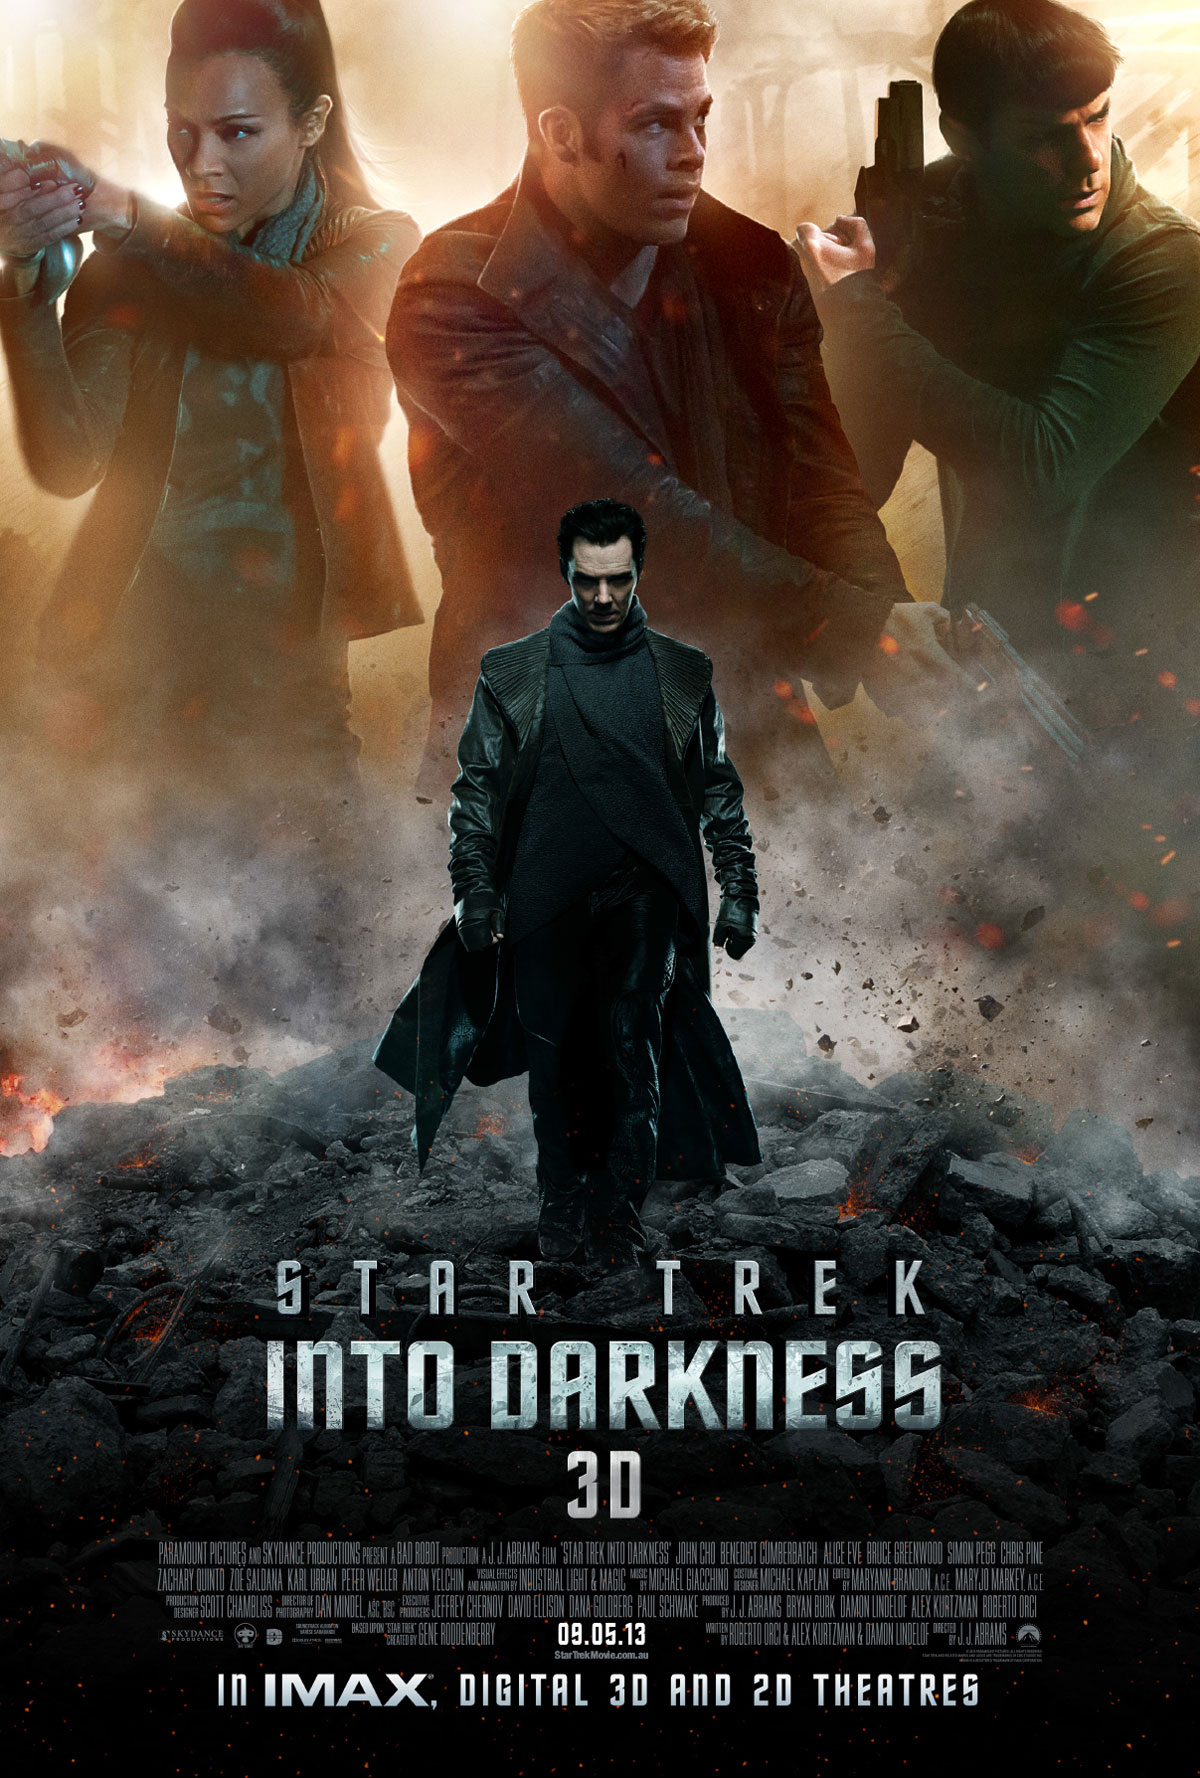 star trek into darkness full movie download in hindi dubbed